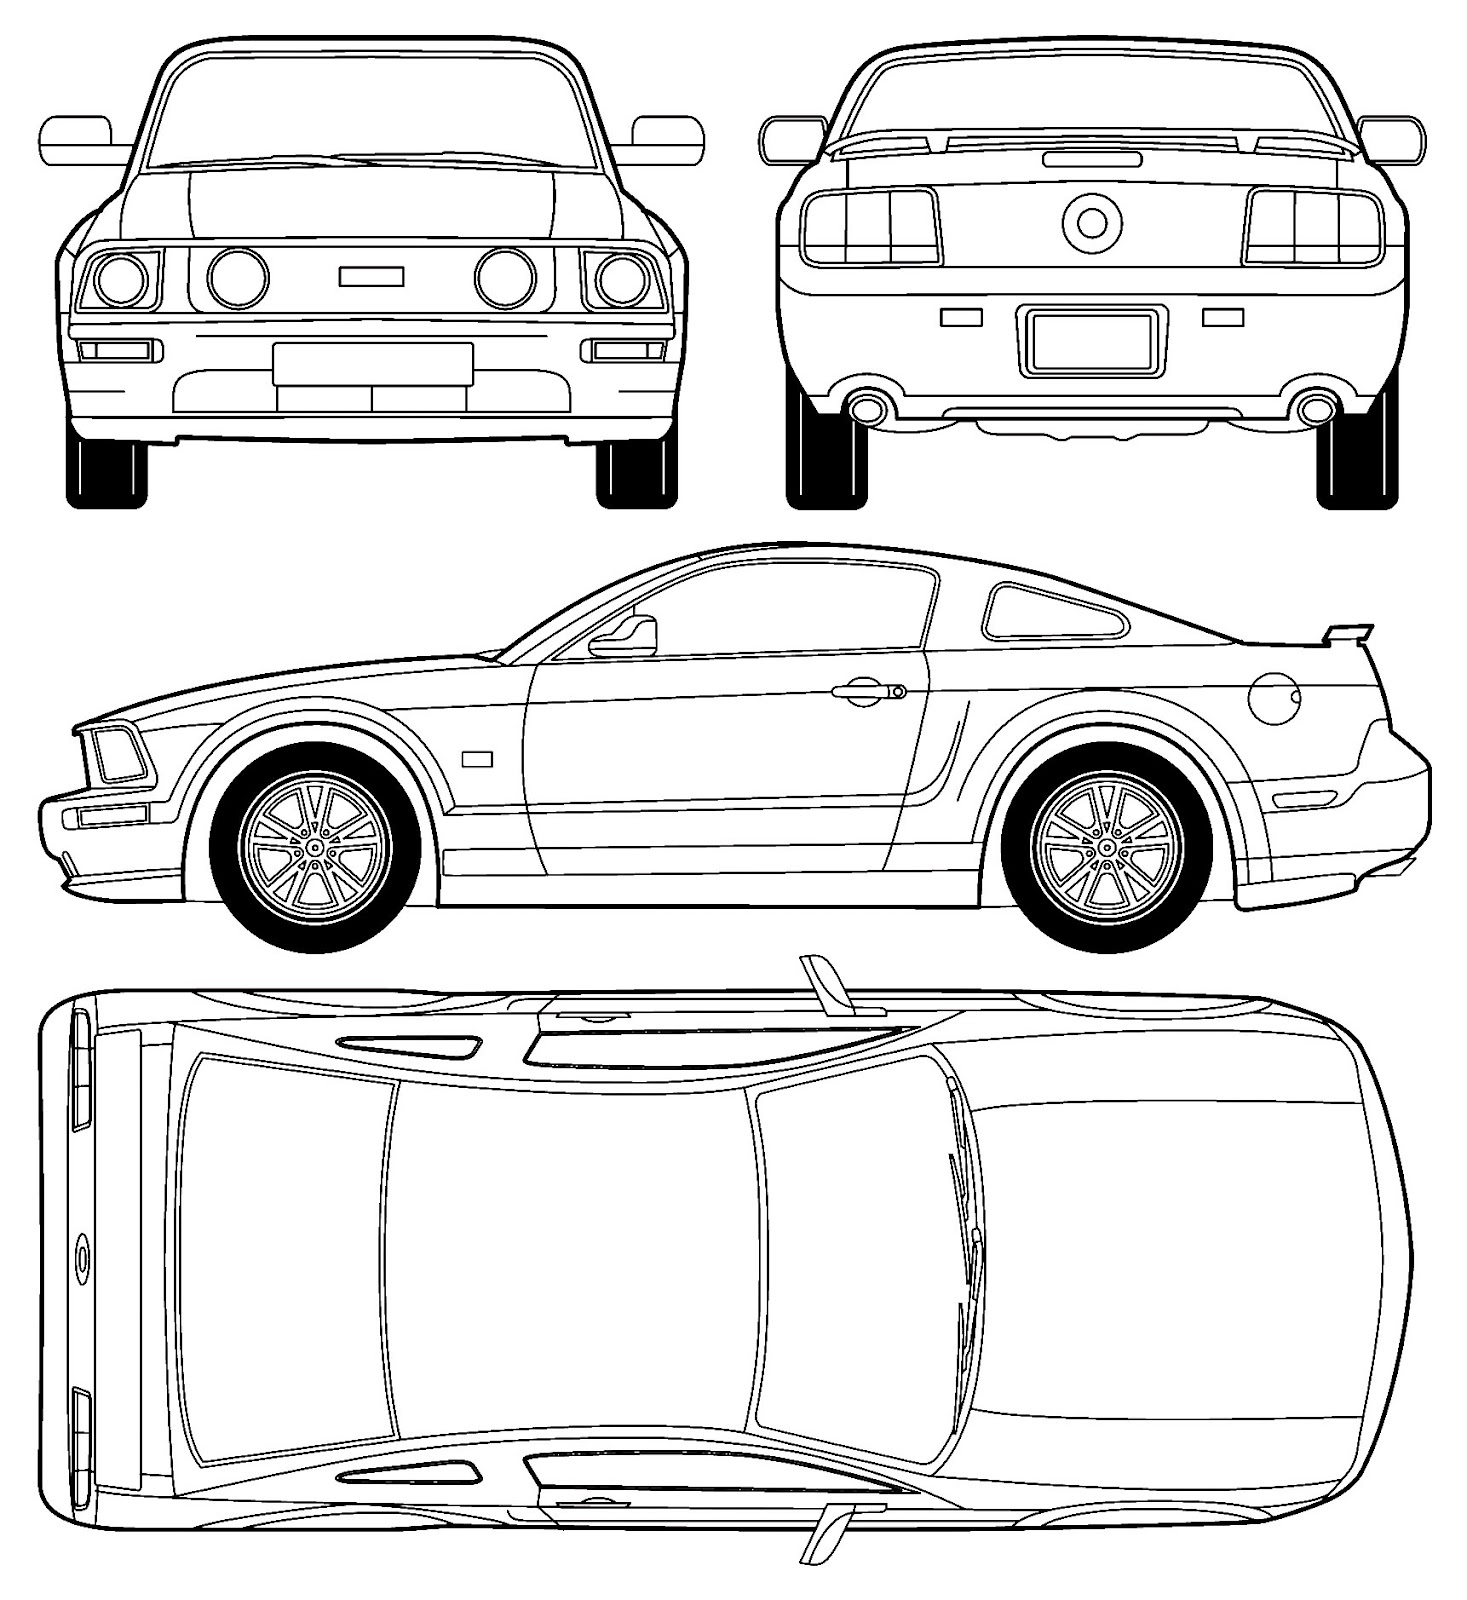 Chevy Avalanche Fan Club likewise Shelby 5 4 Engine Diagram in addition Steering Suspension Diagrams together with HDAR19 also Ford Mustang Ecoboost Gt 2015 16 Rtr Lowering Springs Rtr0412 1. on 2014 ford mustang shelby gt500